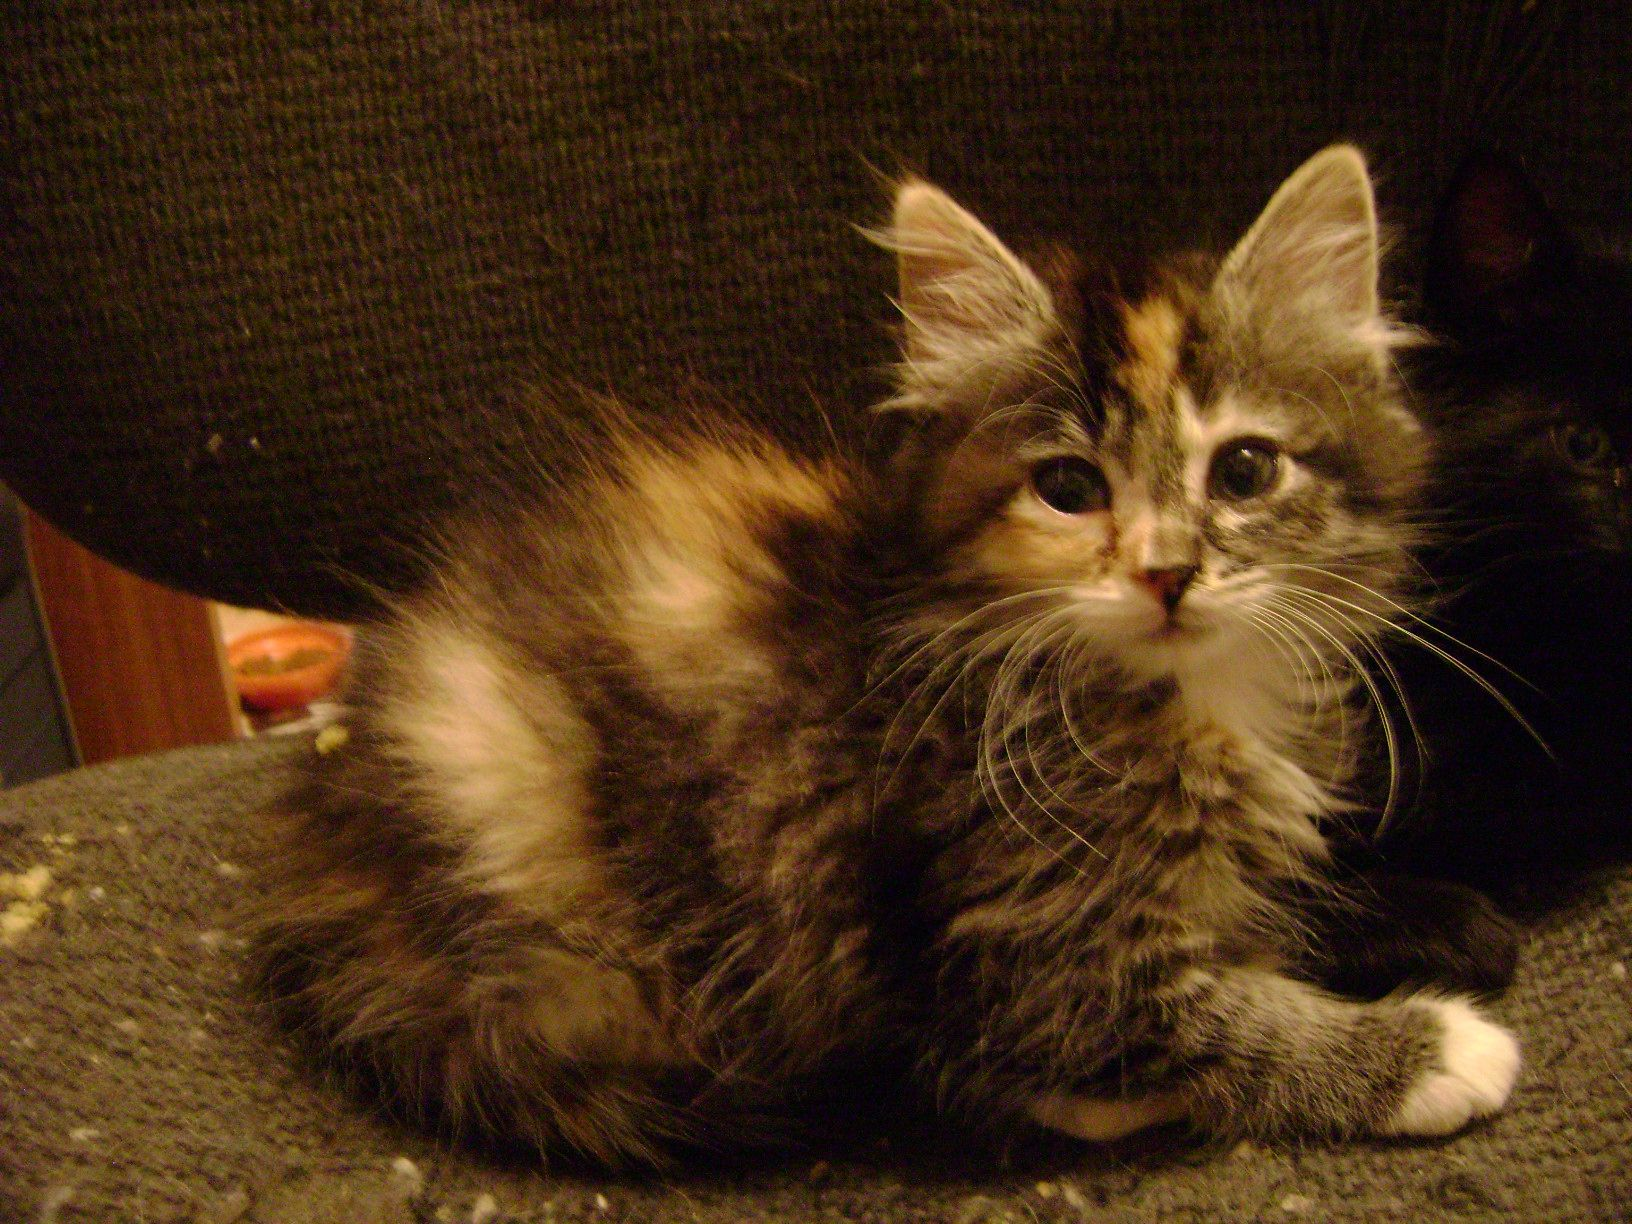 This Is A Kitten I Once Had Named Katie Scarlett Kitten Kittens Animals